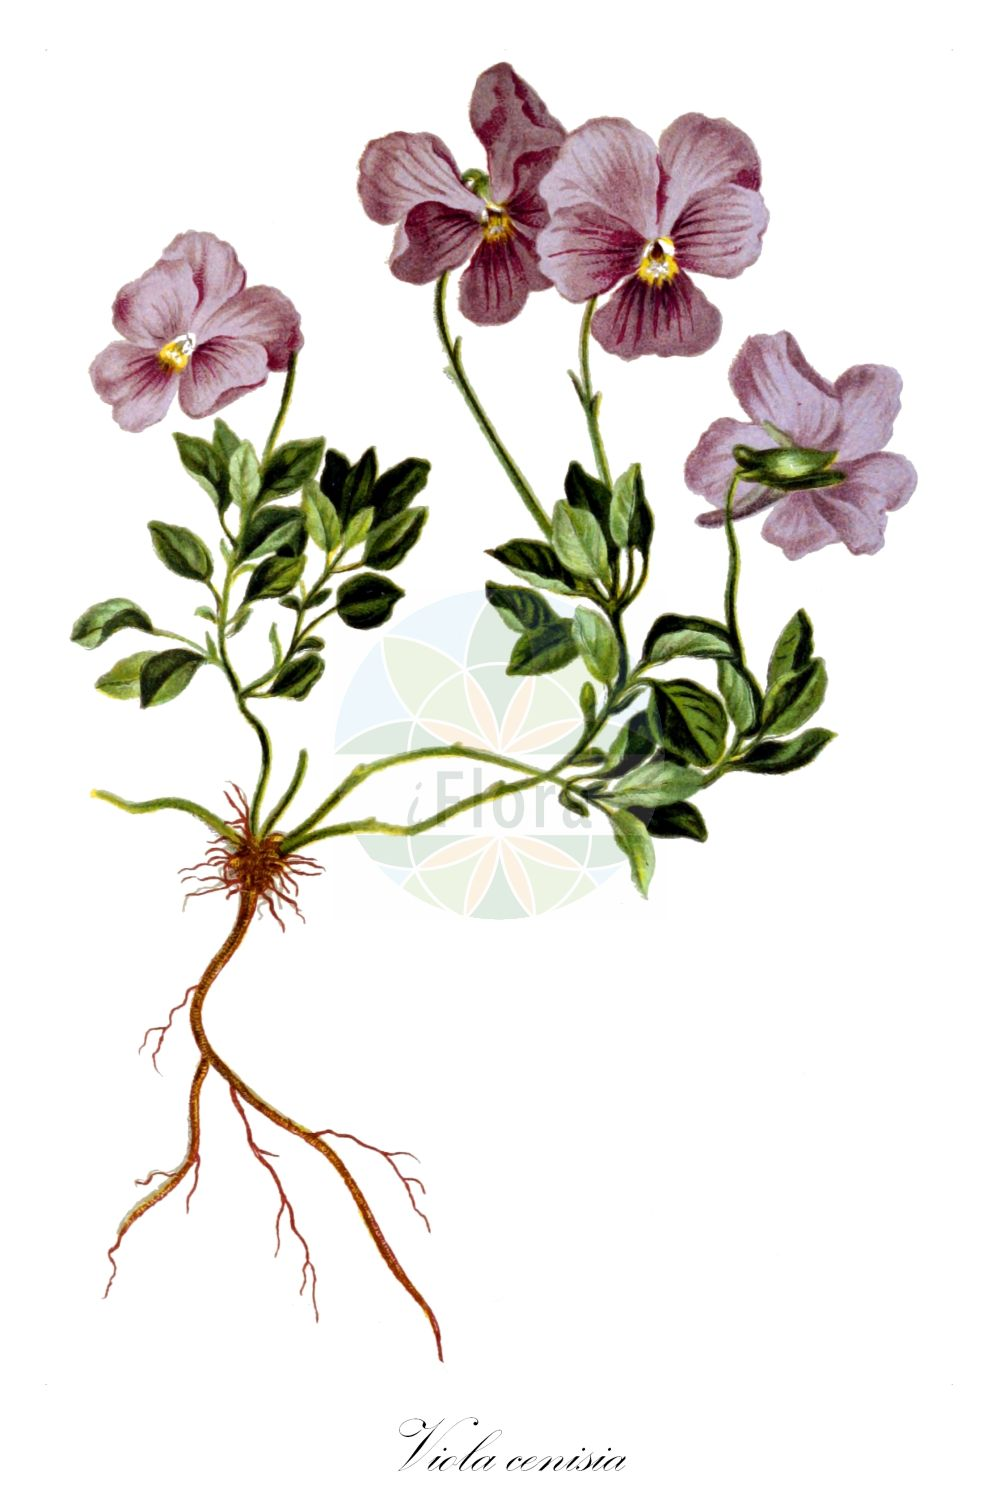 Historische Abbildung von Viola cenisia. Das Bild zeigt Blatt, Bluete, Frucht und Same. ---- Historical Drawing of Viola cenisia.The image is showing leaf, flower, fruit and seed. (Viola cenisia,Viola integrifolia,Viola,Veilchen,violet,Violaceae,Veilchengewaechse,Violet family,Blatt,Bluete,Frucht,Same,leaf,flower,fruit,seed,Hartinger & von Dalla Torre (1806f))